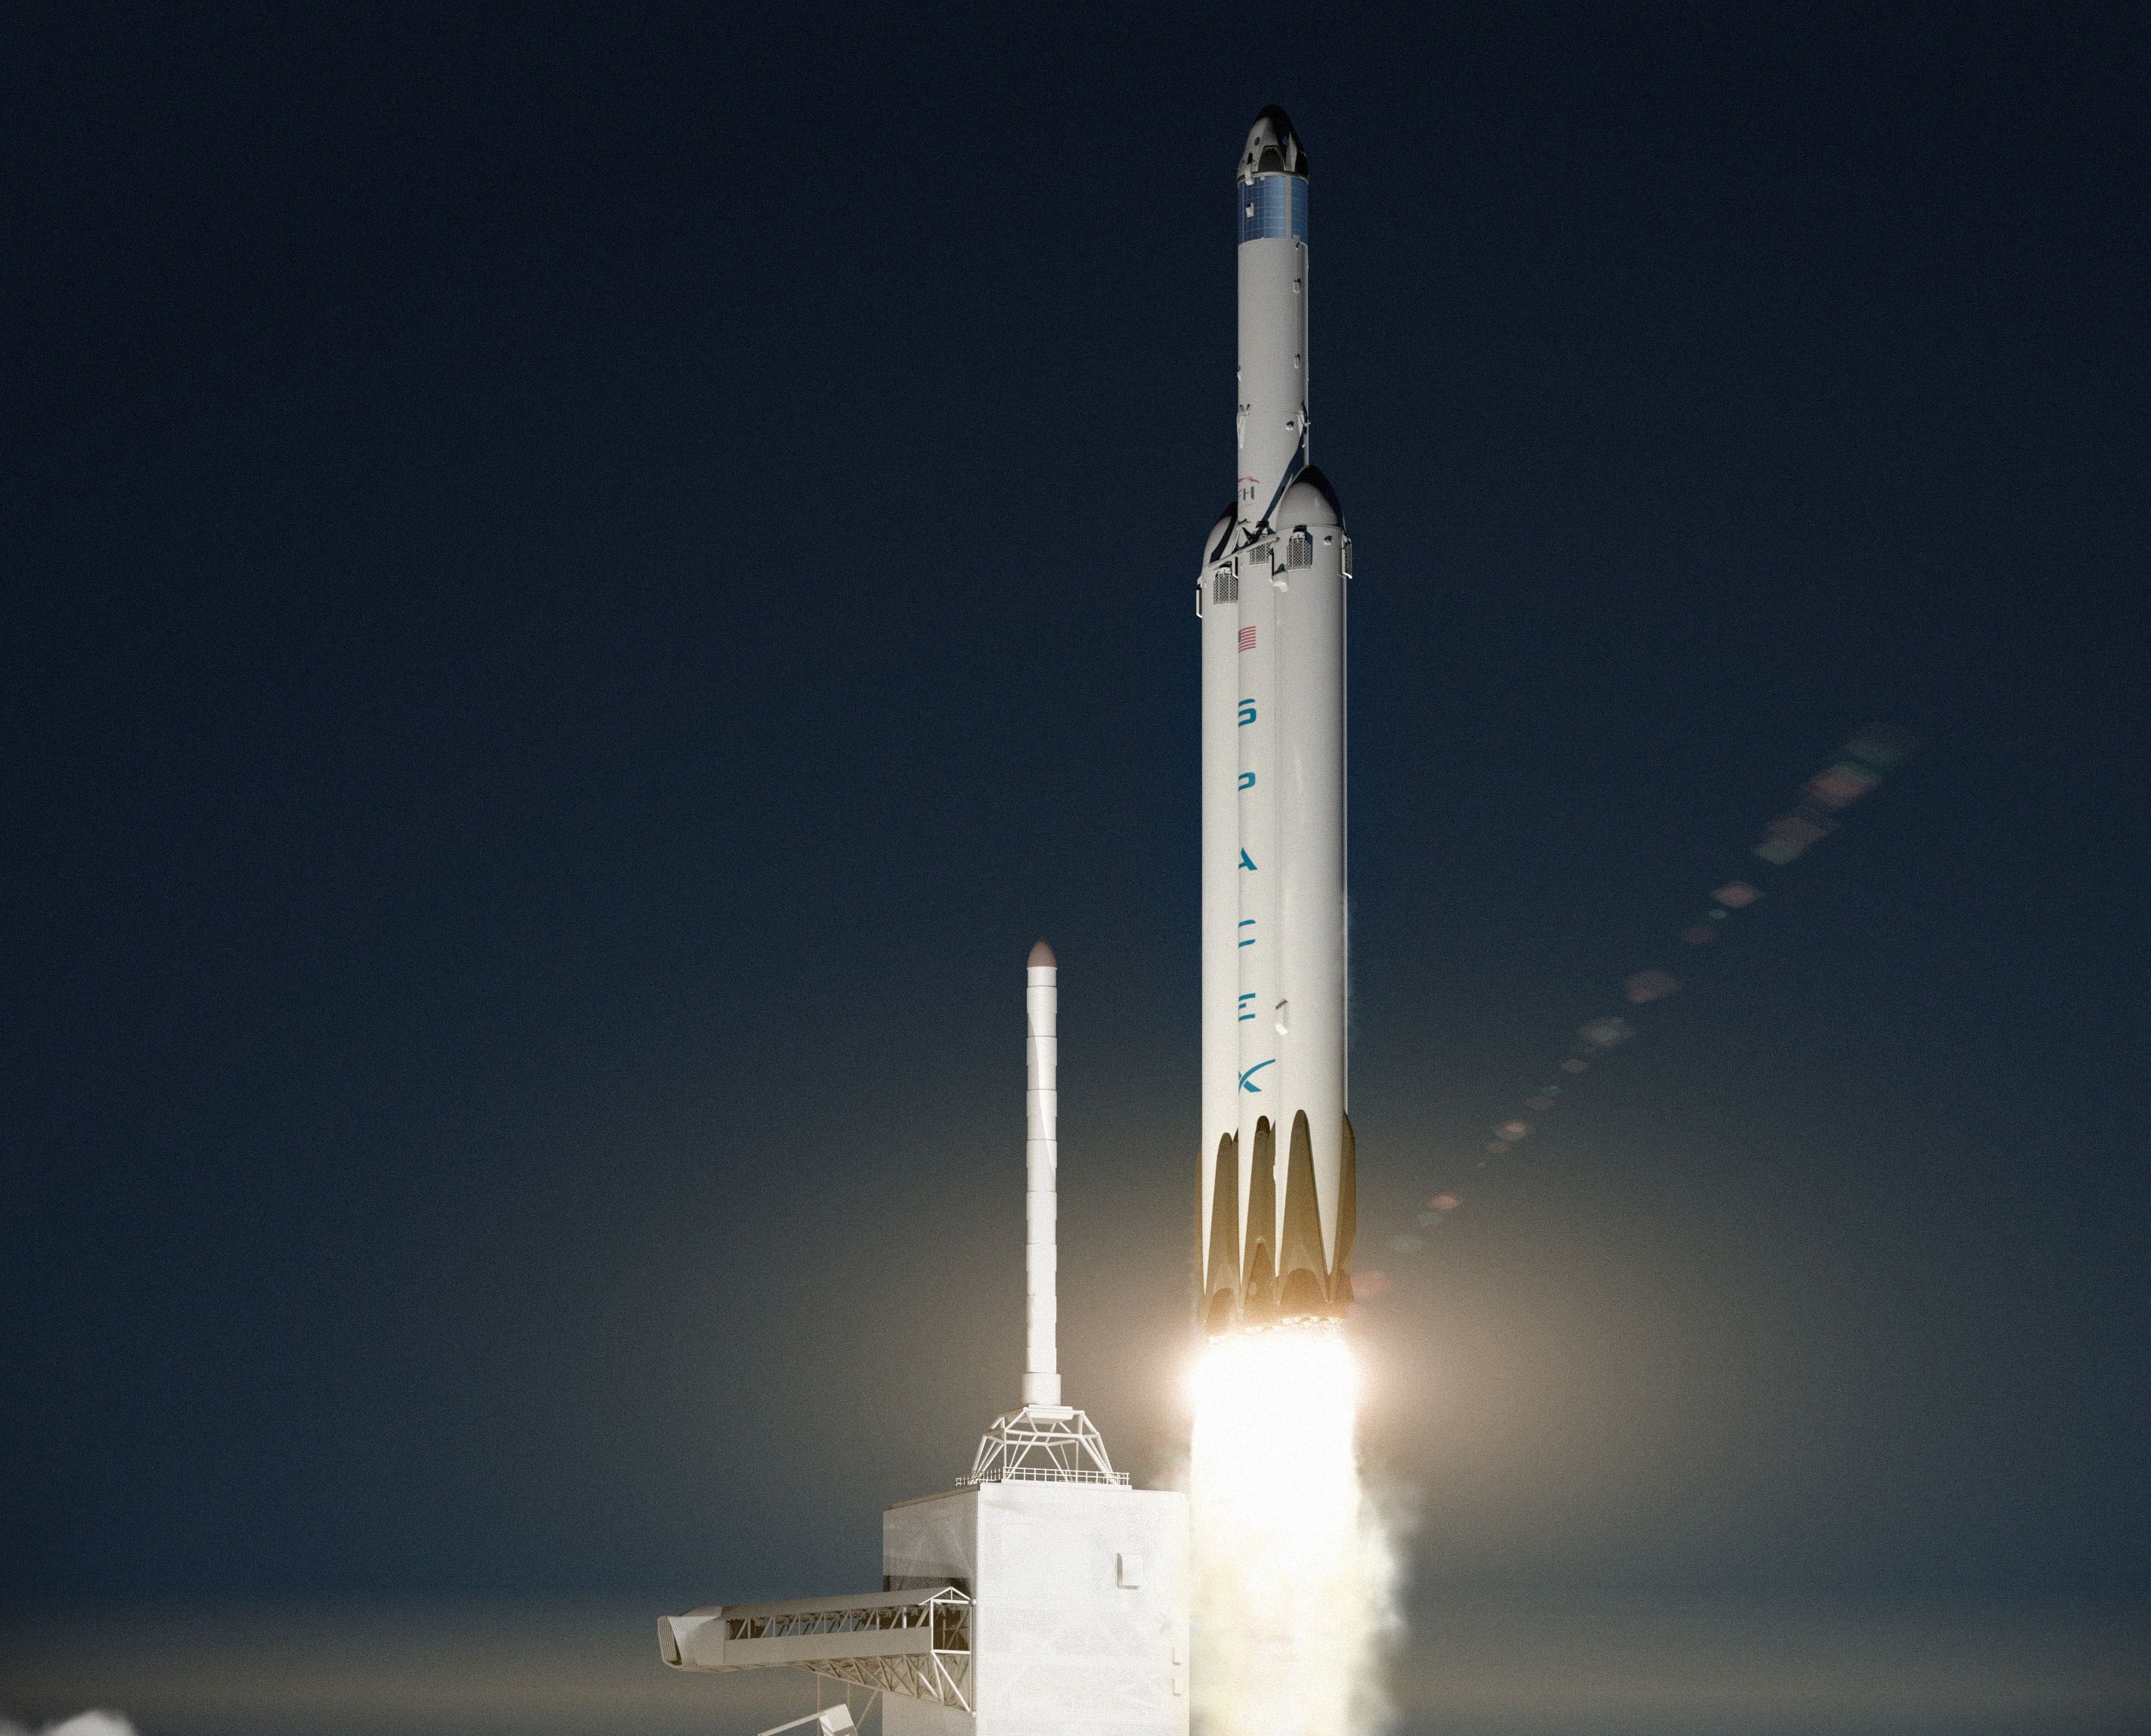 spacex intends to launch dragon spacecraft to mars with its falcon heavy rocket